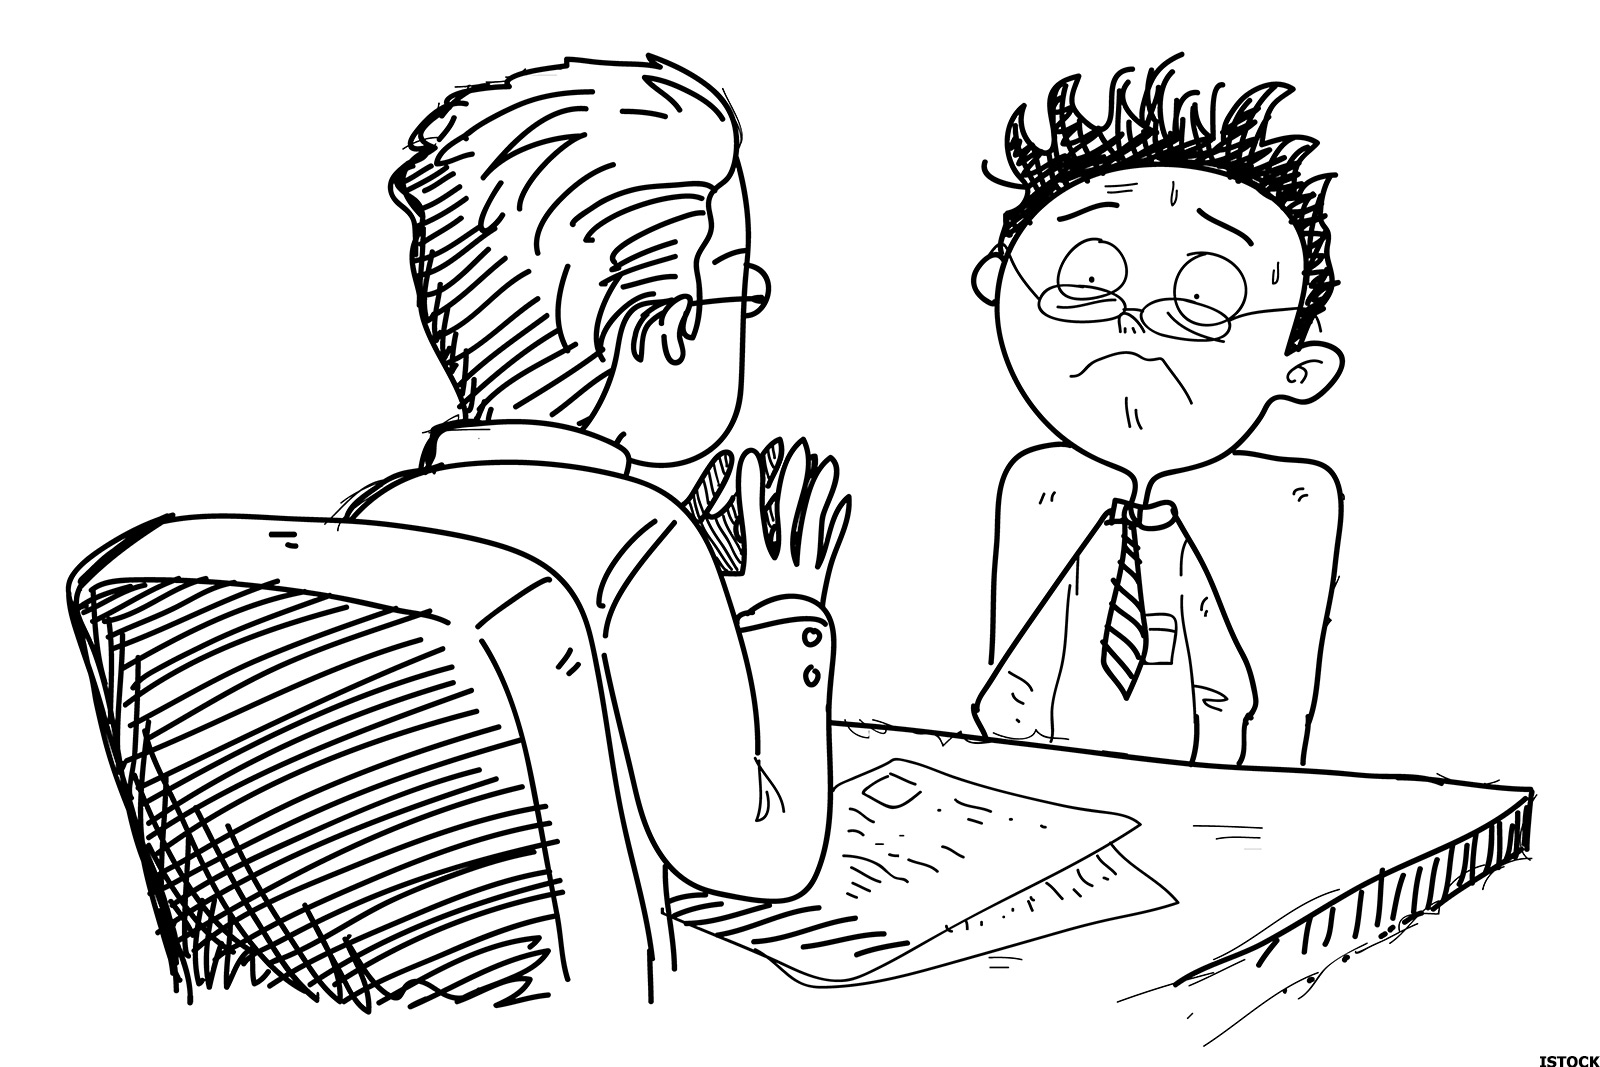 How That Youthful Indiscretion Could Cost You Your Next Job